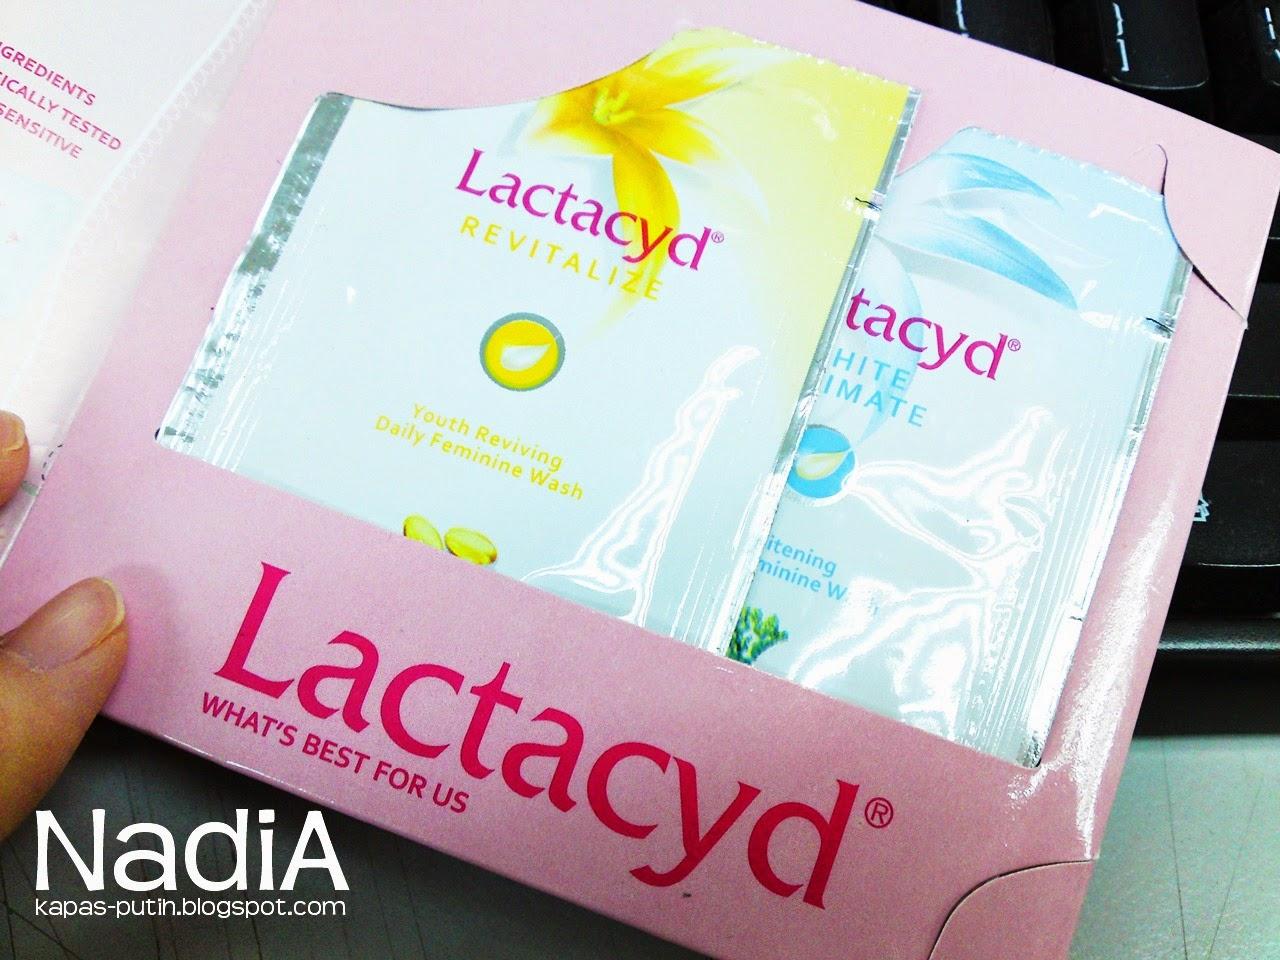 Free Lactacyd Sample - It's time to love your V